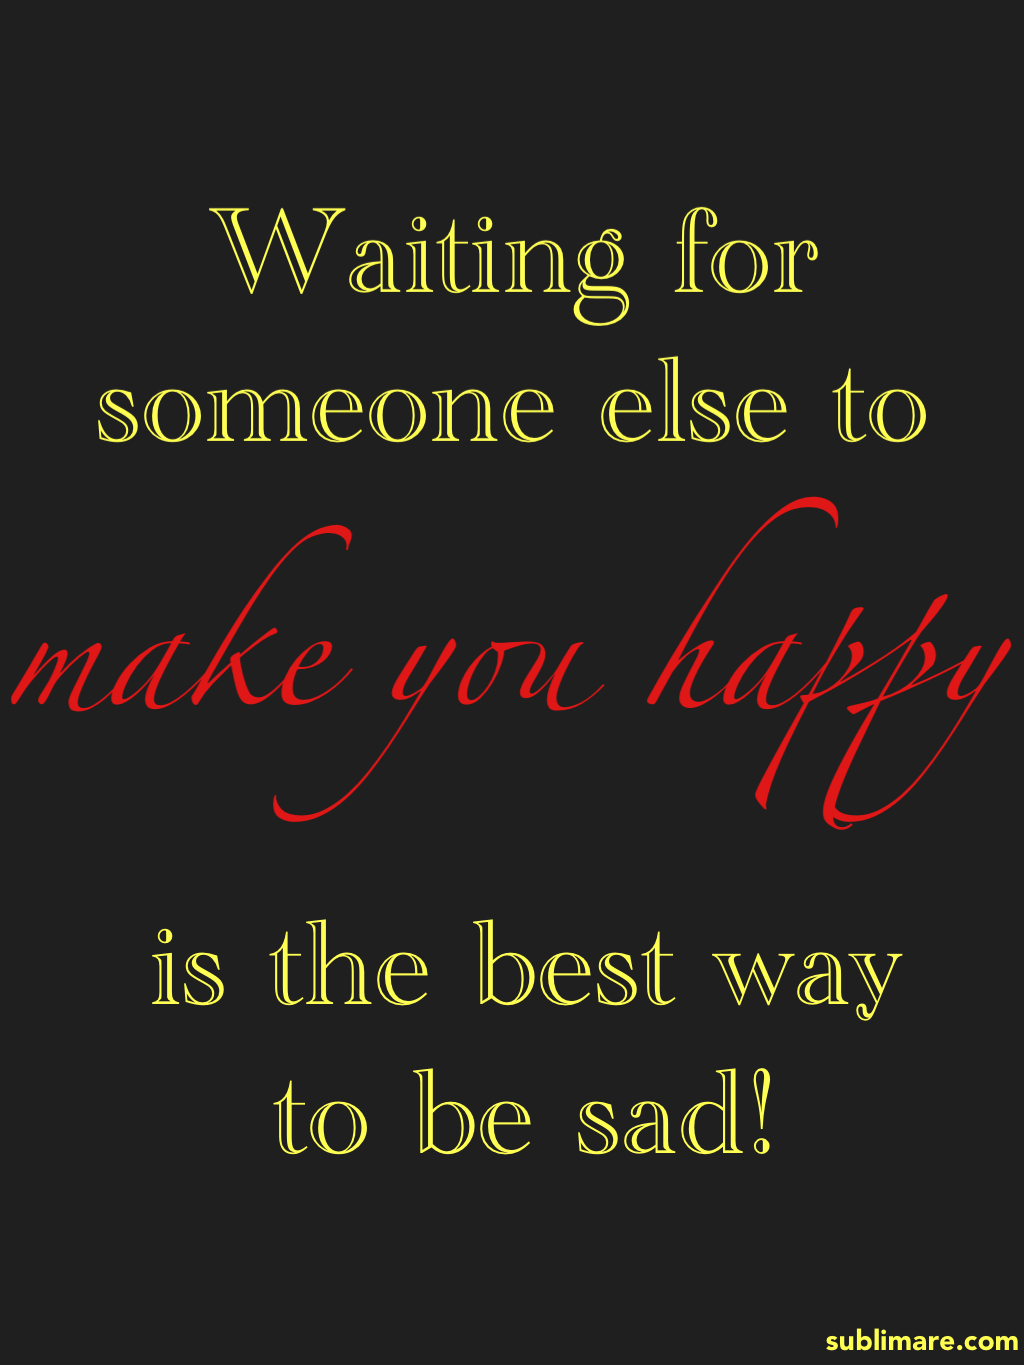 waiting for someone to make you happy